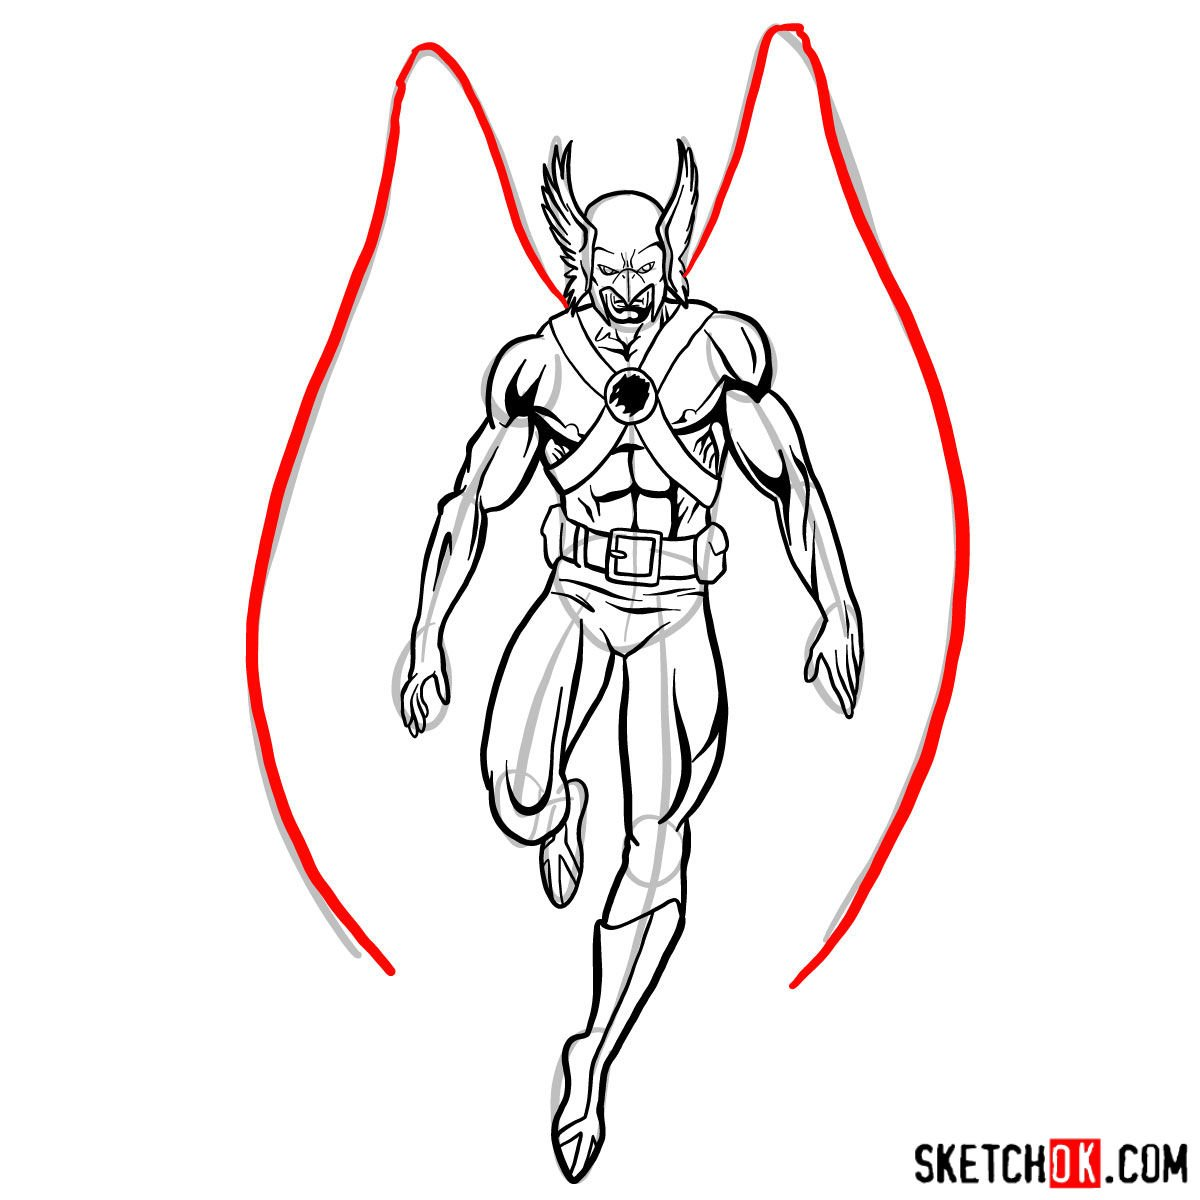 How to draw Hawkman from DC Comics - step 13